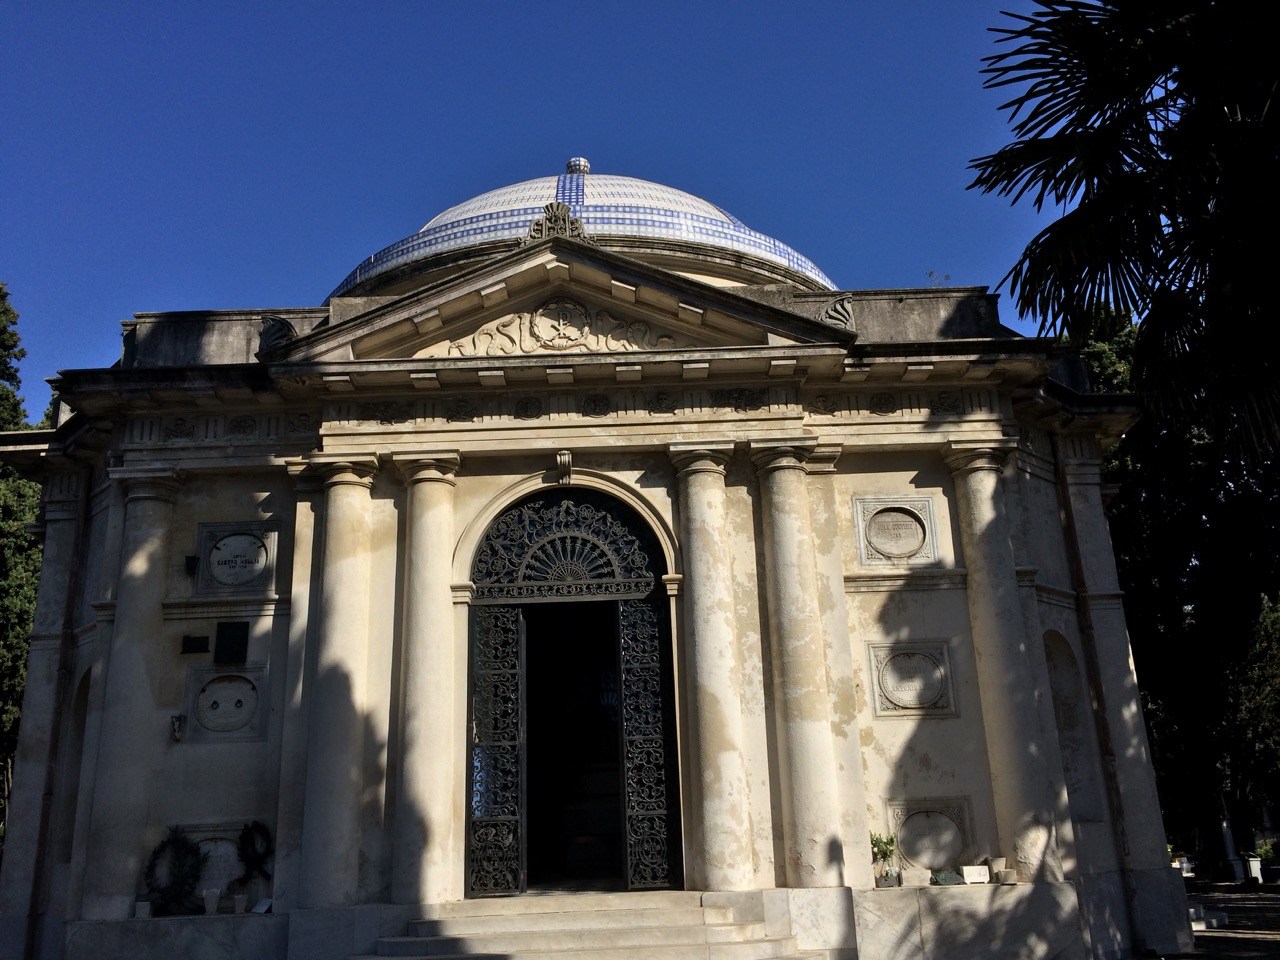 The Central Cemetery of Montevideo